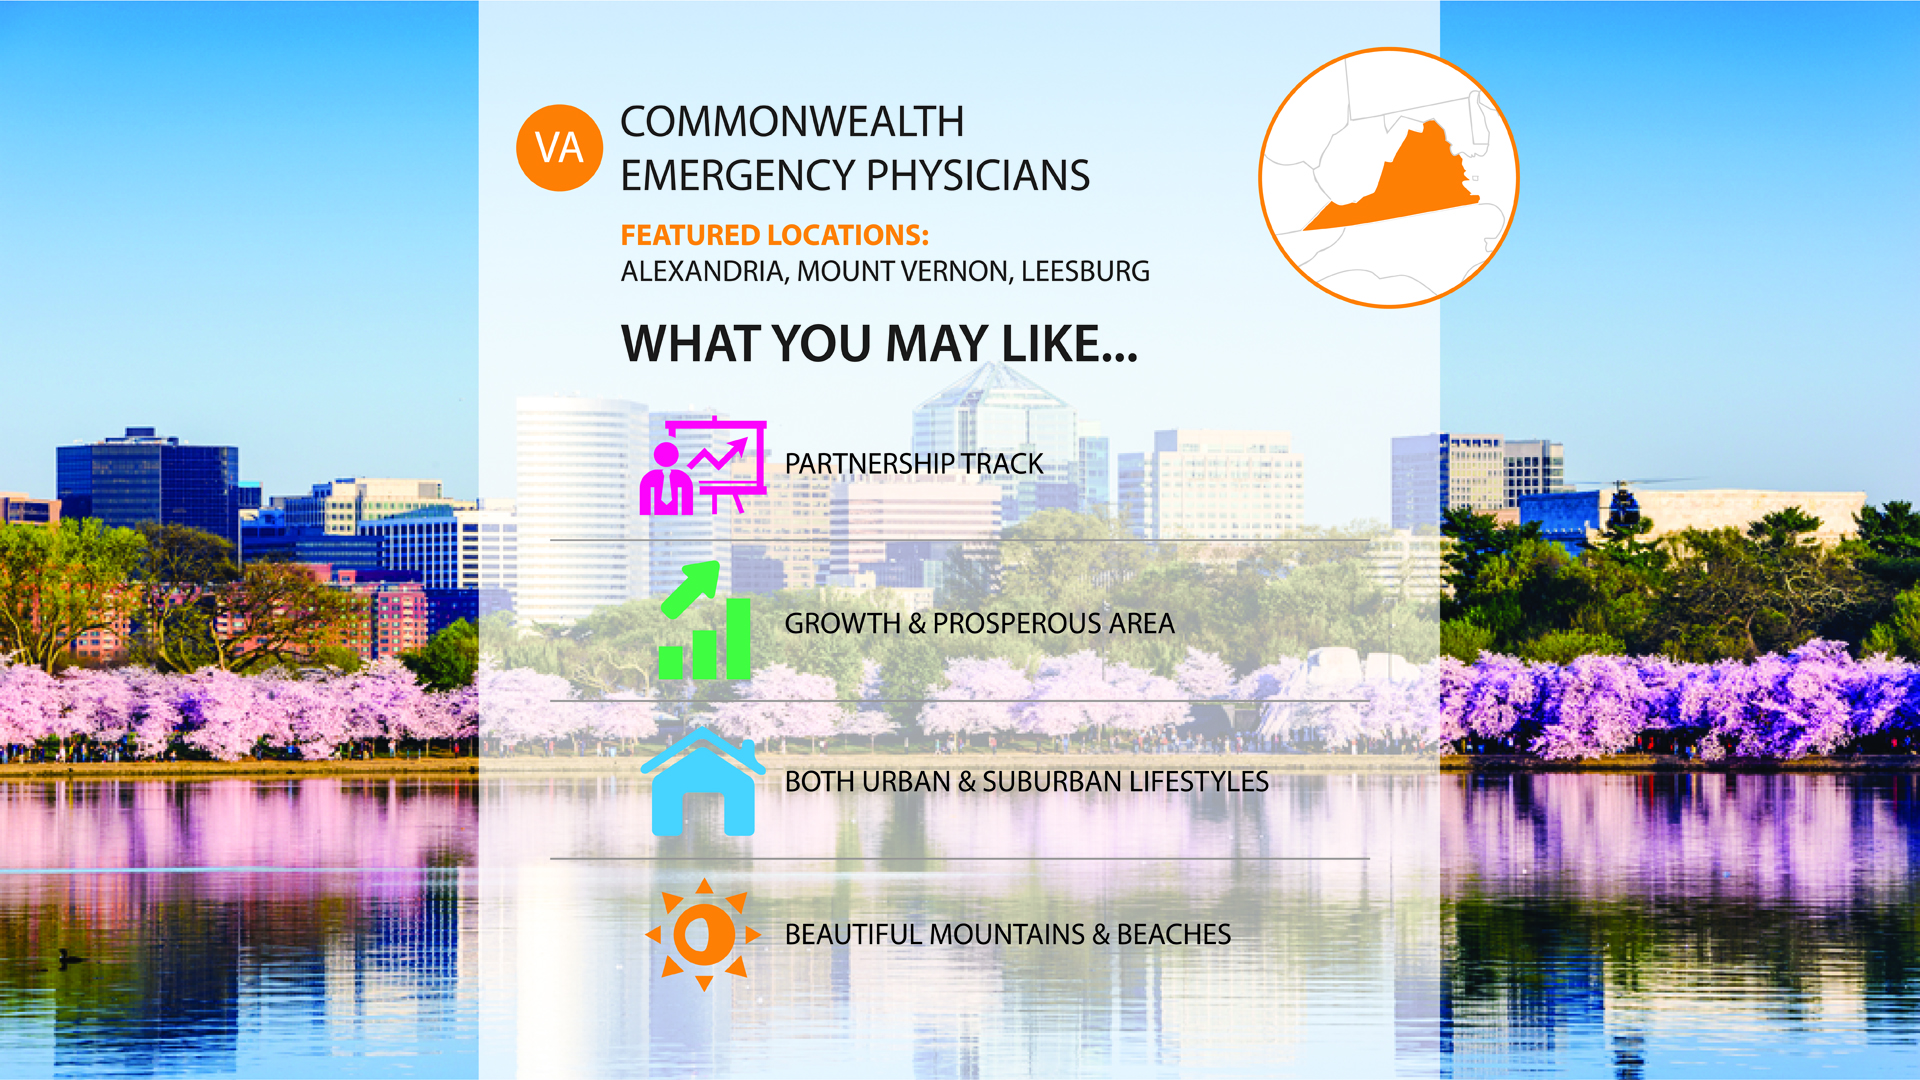 Commonwealth Emergency Physicians job in virginia